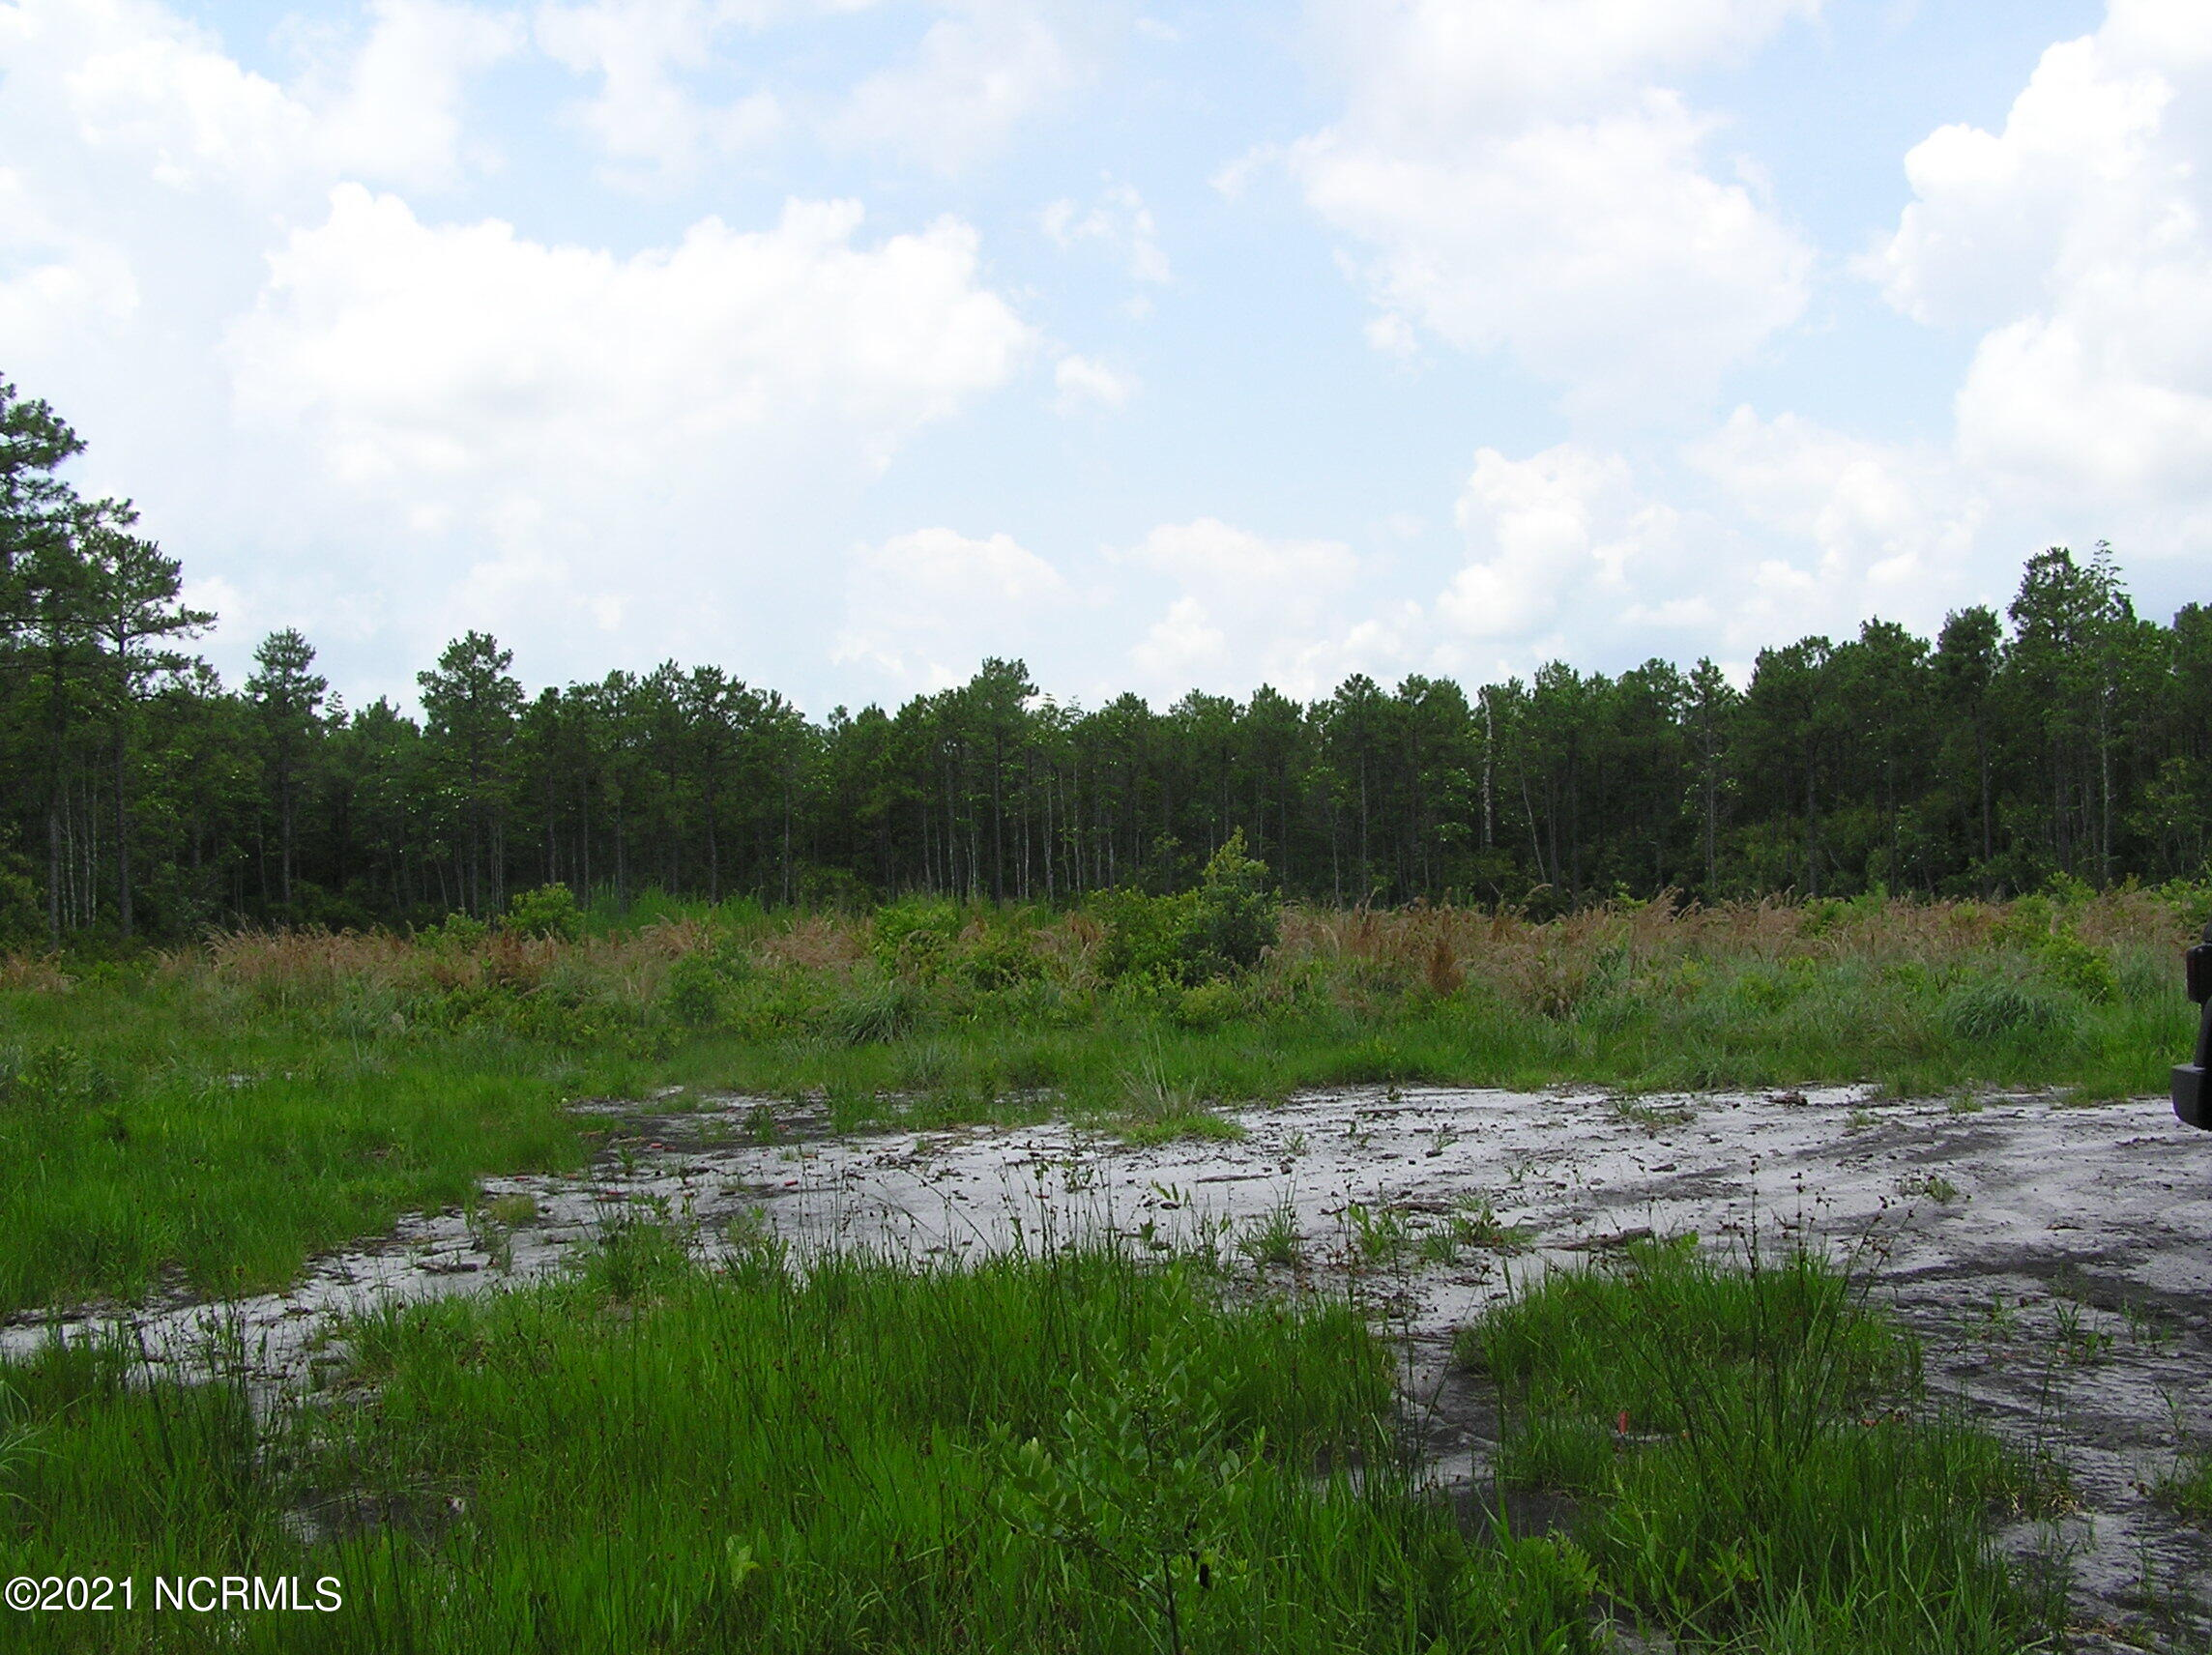 Lot150/151 Greenview Ranches, Wilmington, North Carolina 28411, ,Residential land,For sale,Greenview Ranches,100262149